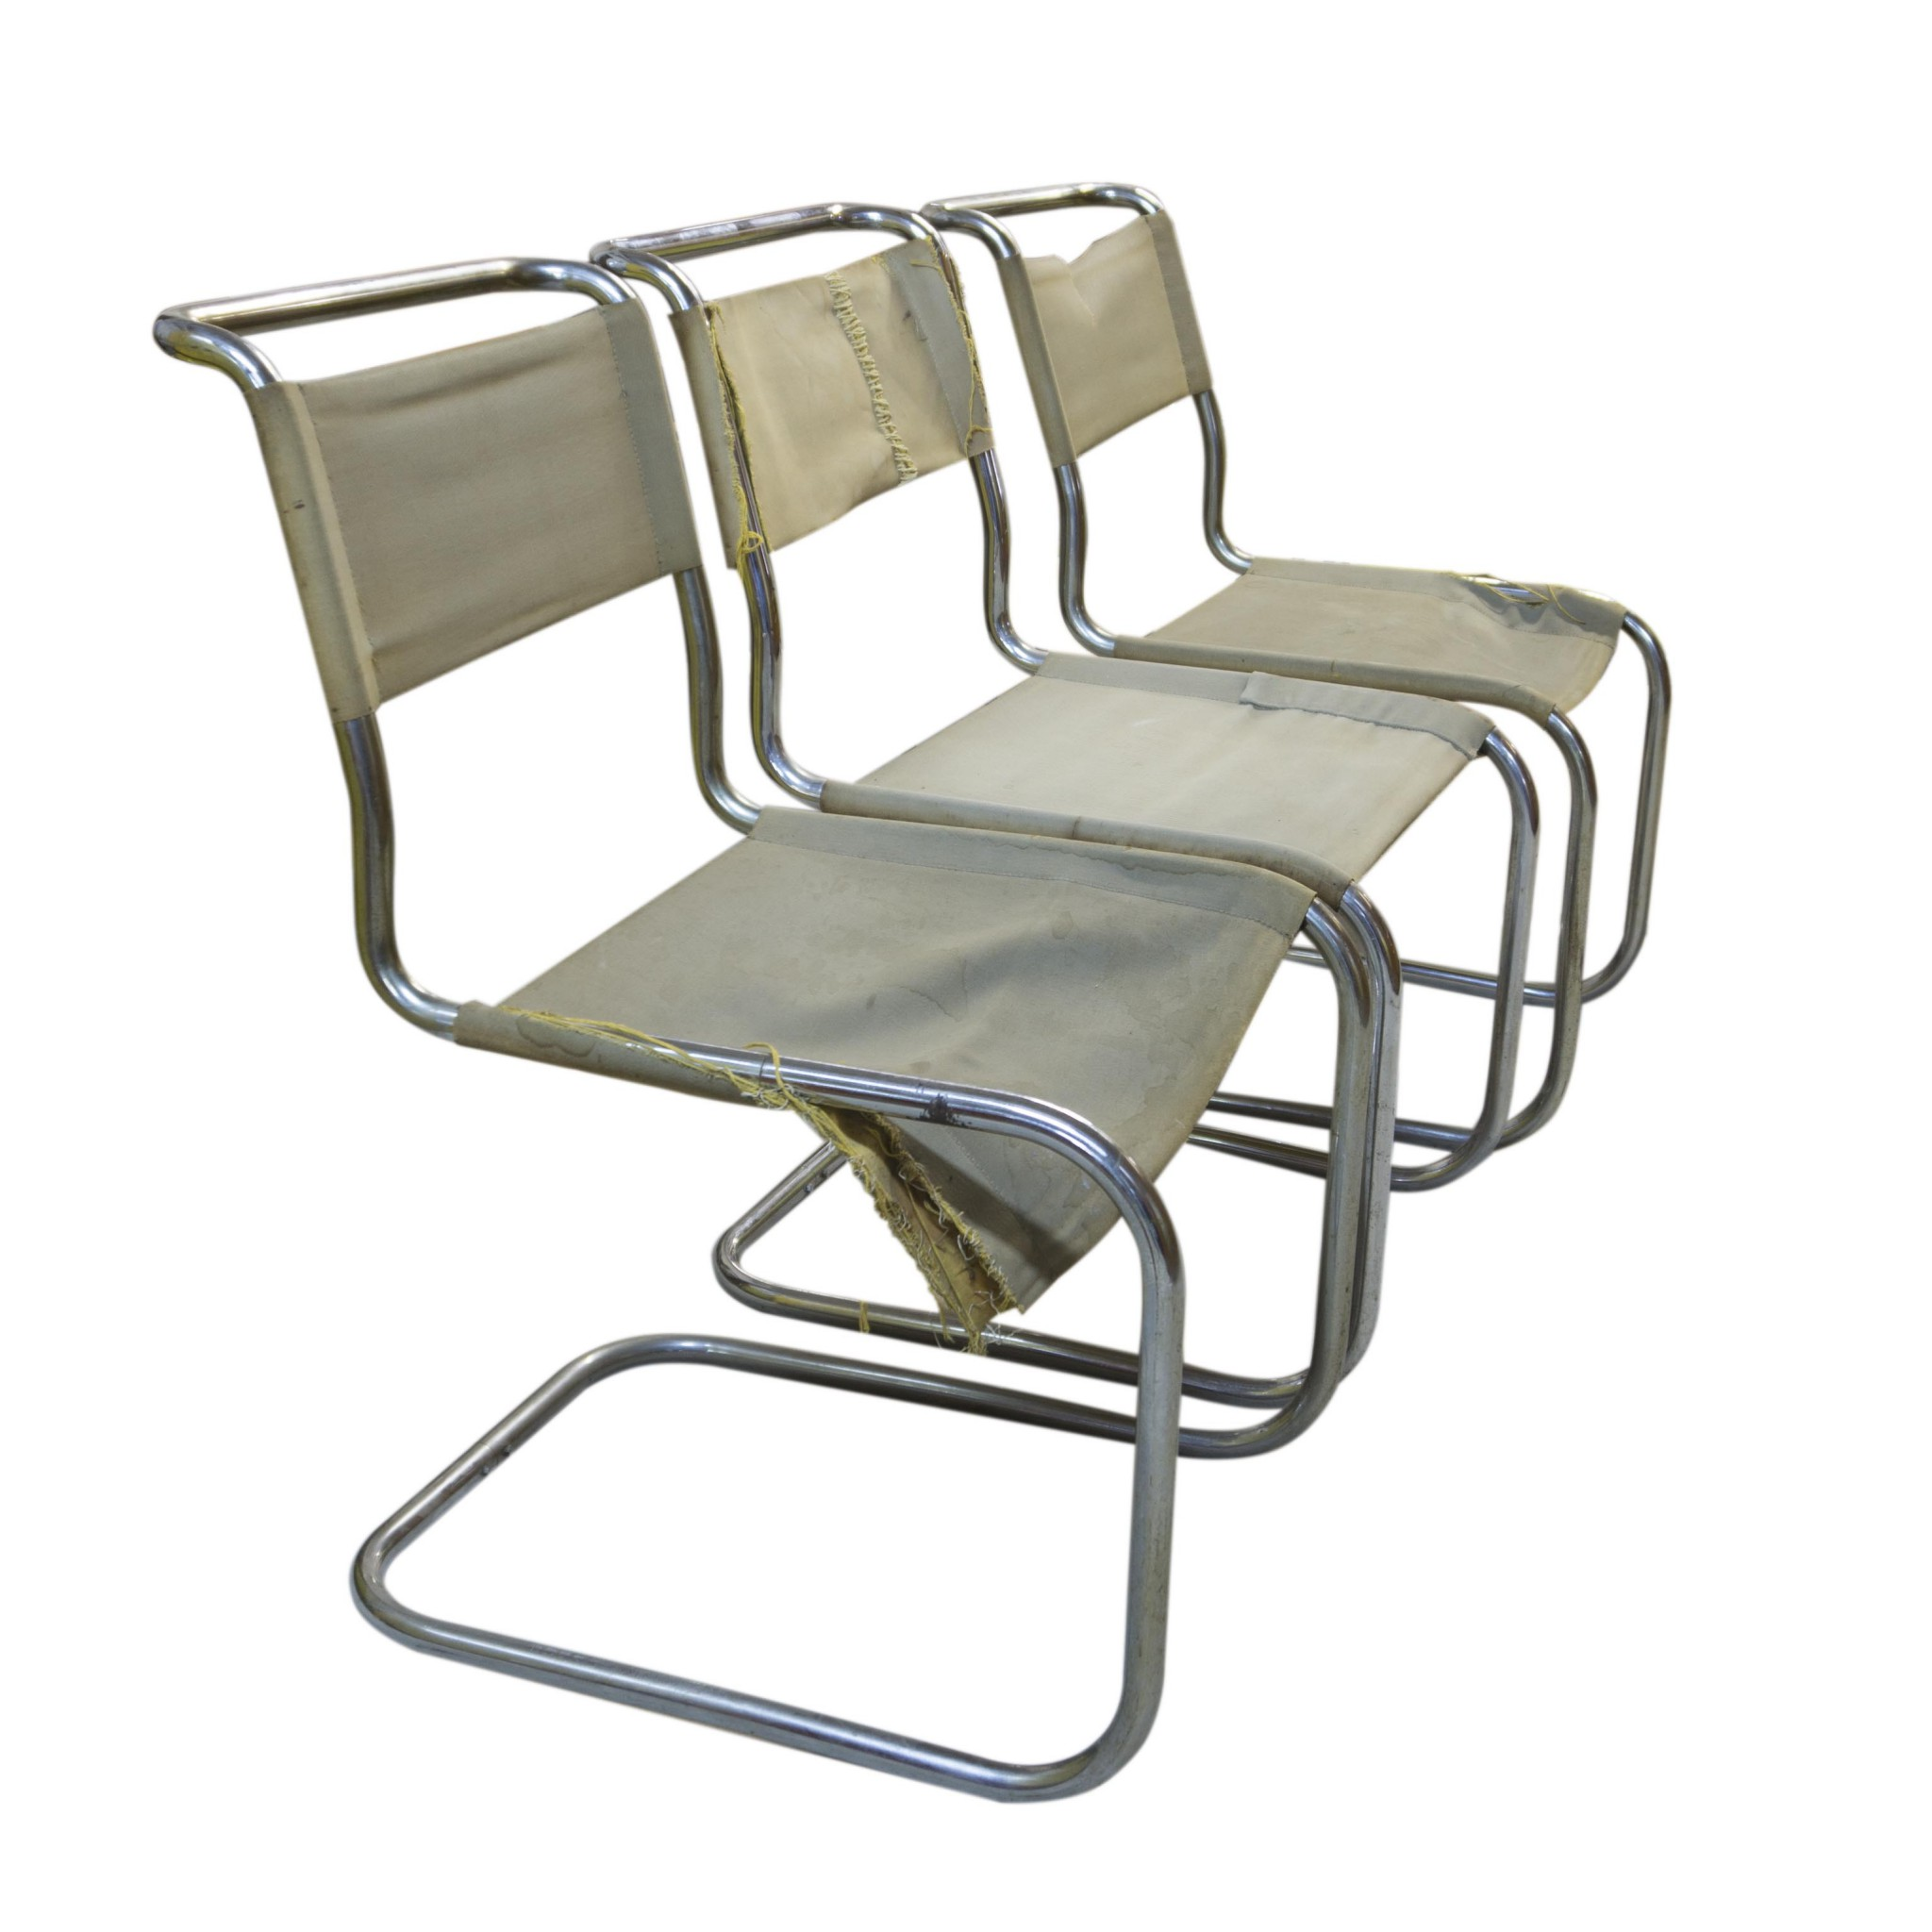 Three B33 Chairs by Marcel Breuer for Thonet